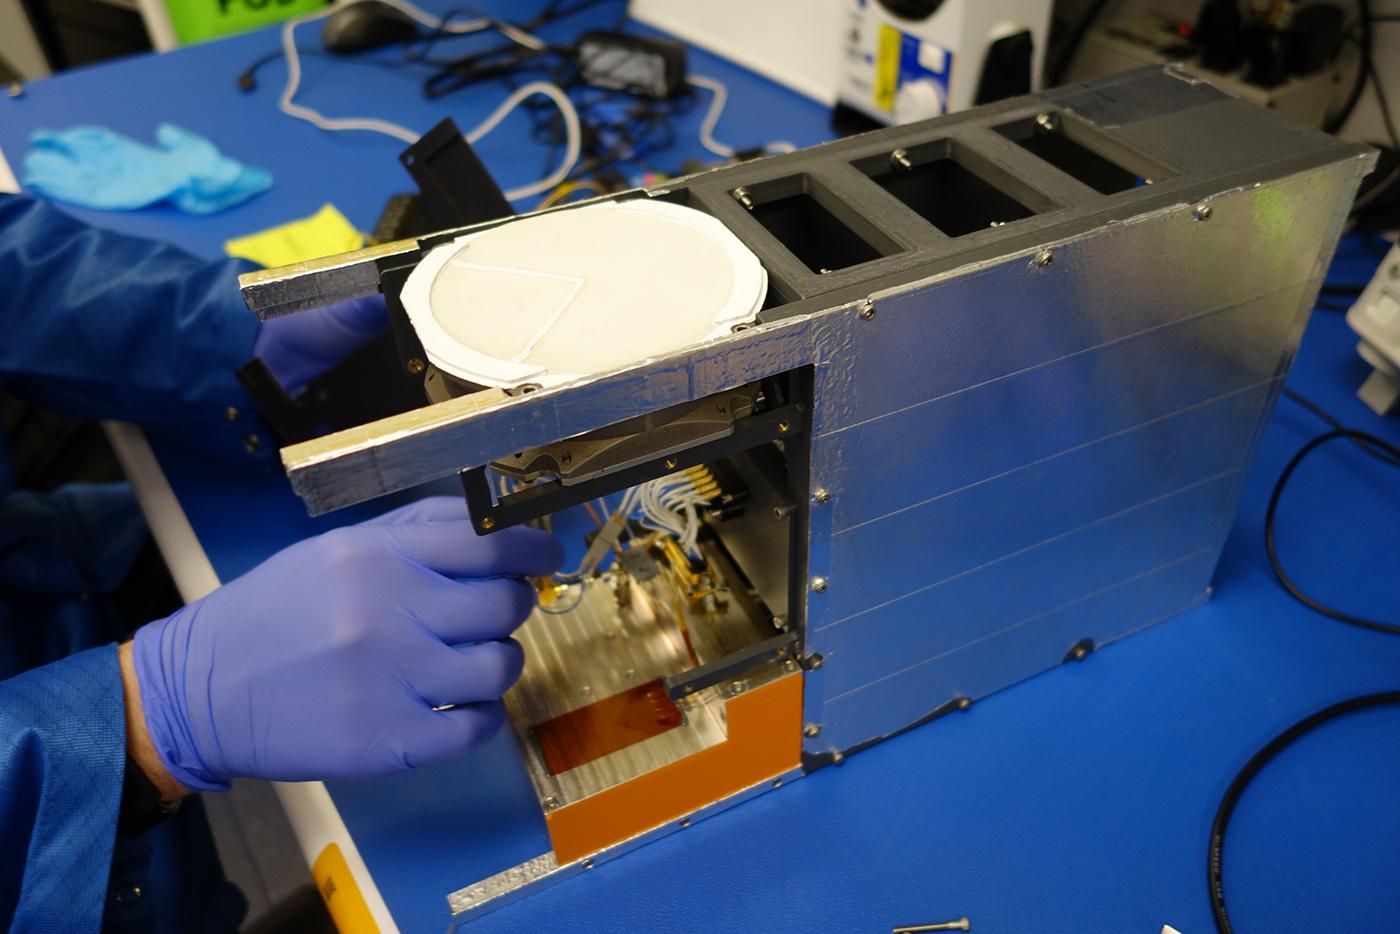 Figure 1 | A technician working on The Pony Express-1 mission payload for the Tyvak-0129, a next-generation Tyvak 6U spacecraft. Courtesy of Lockheed Martin